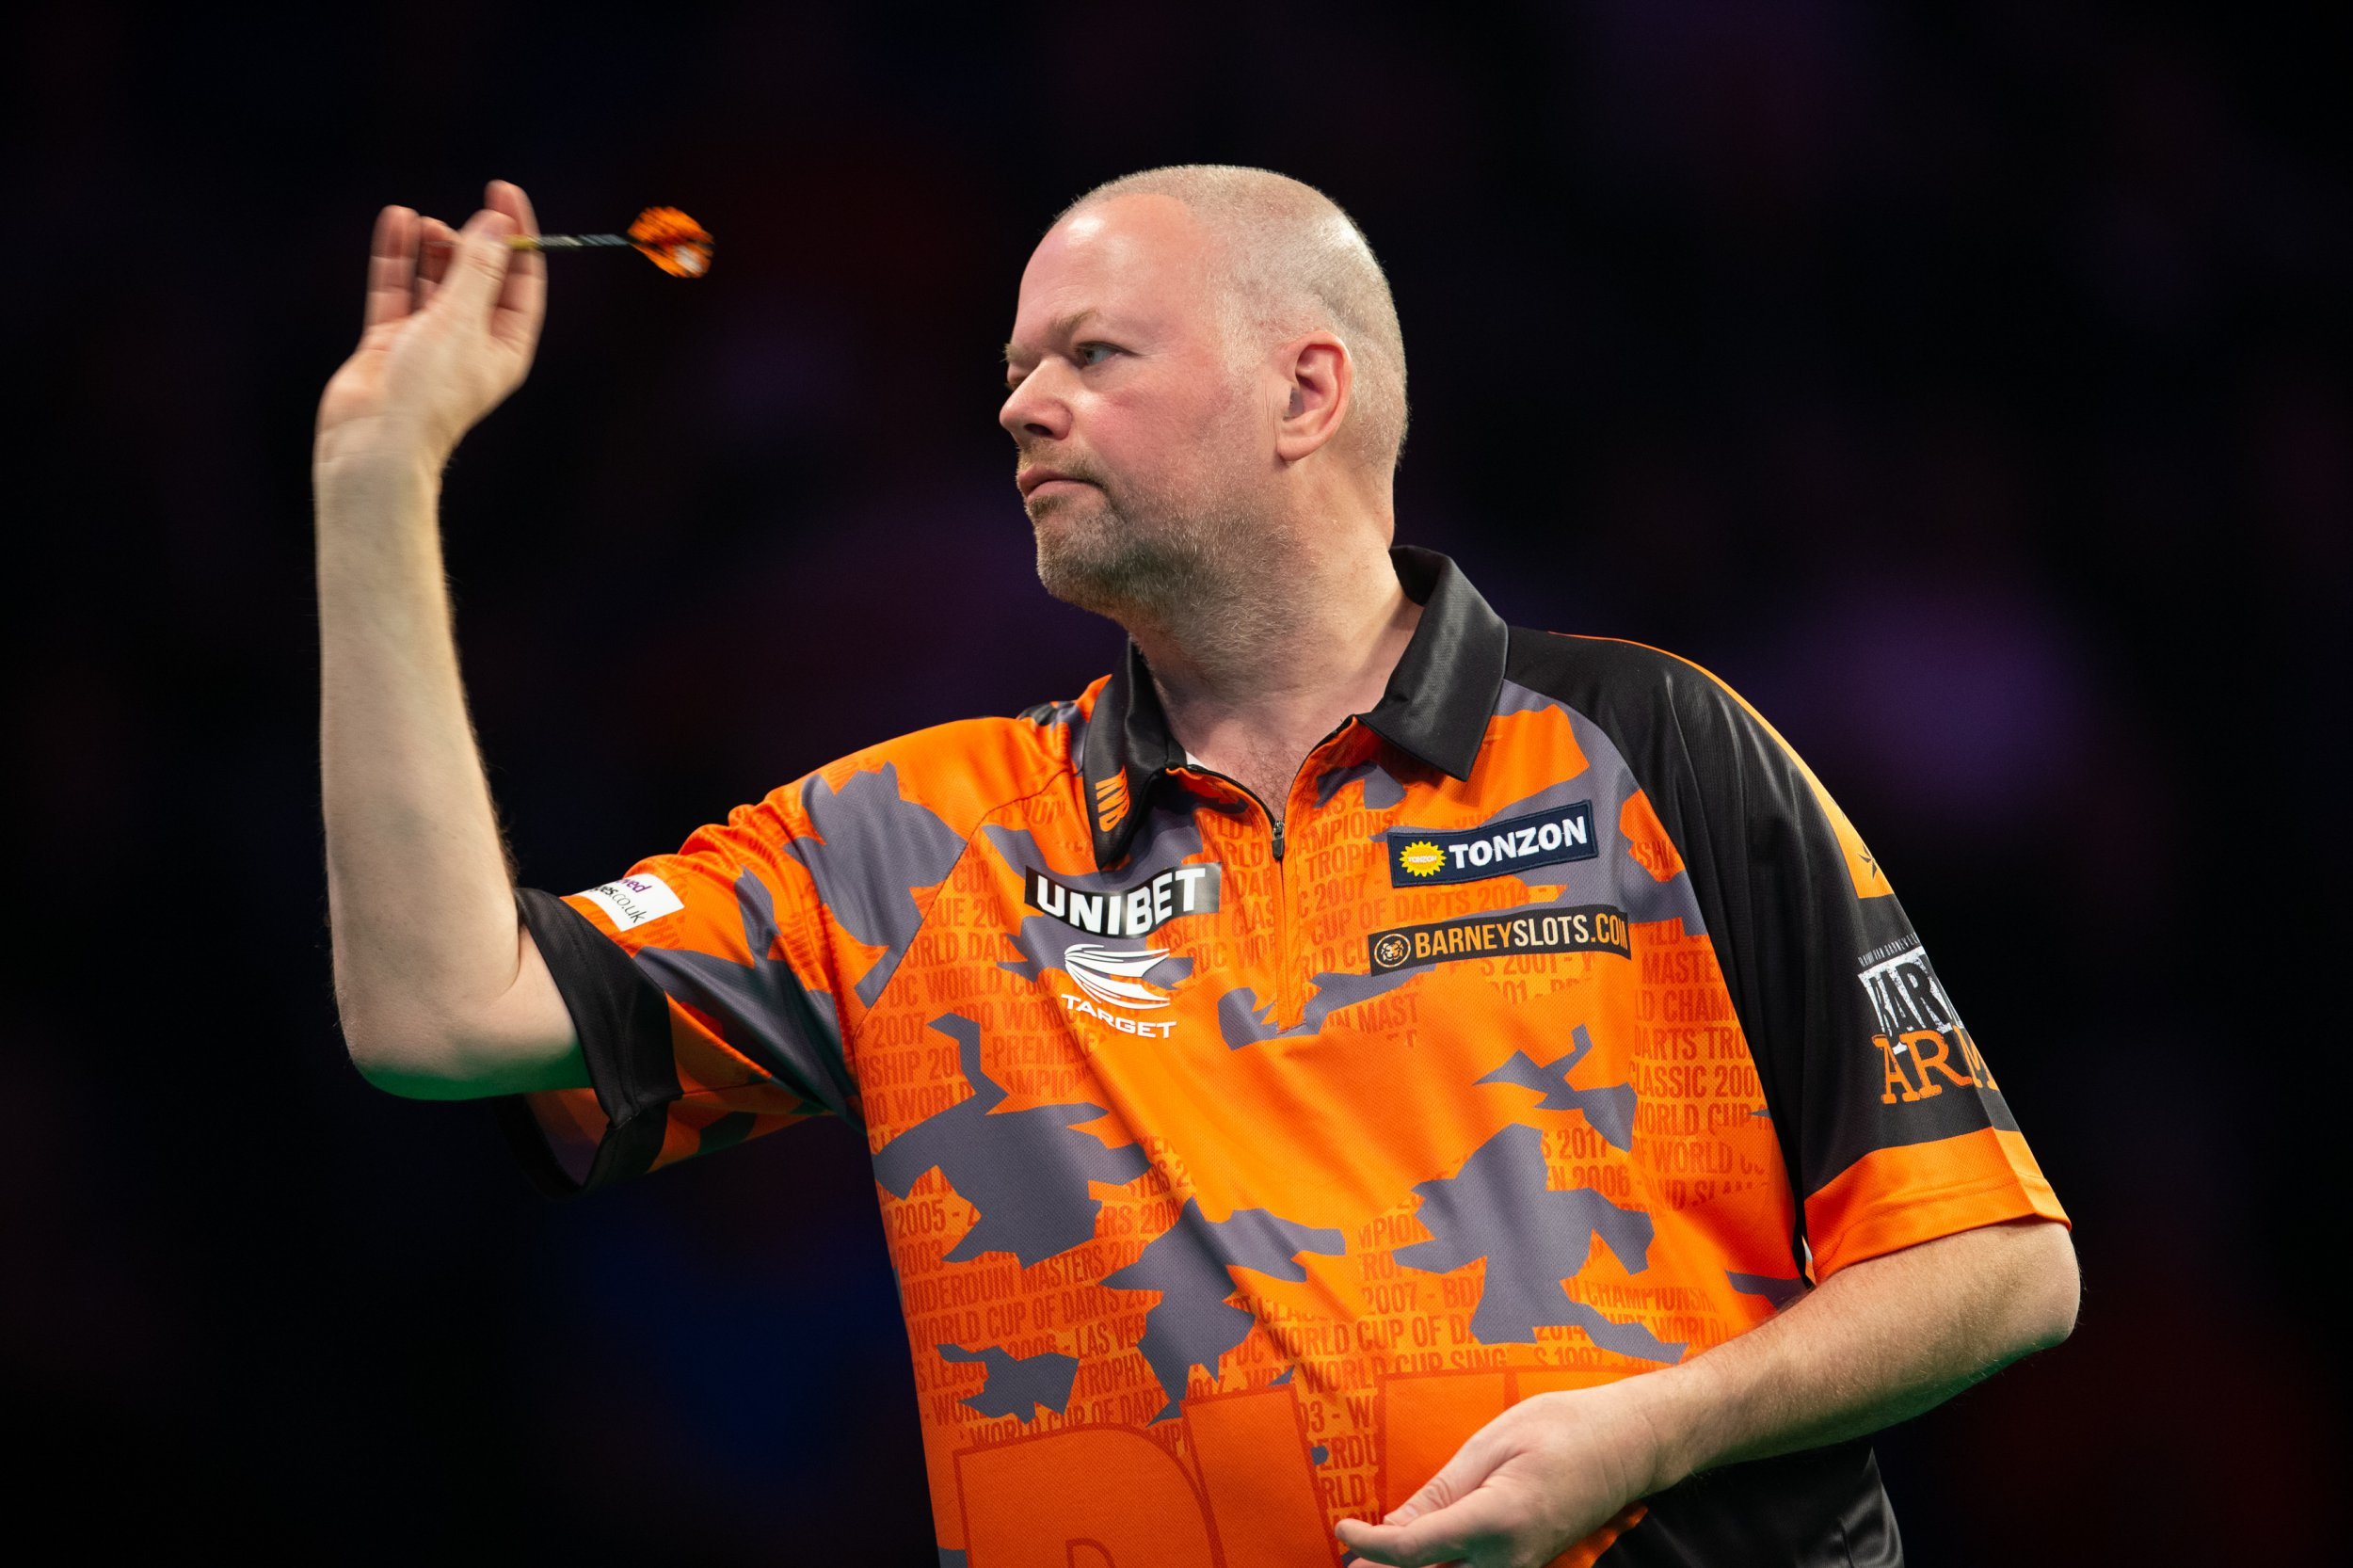 14th March 2019, Motorpoint Arena, Nottingham, England; Unibet Premier League Darts, night 6; Raymond van Barneveld in his match against Rob Cross (photo by Tim Williams/Action Plus via Getty Images)